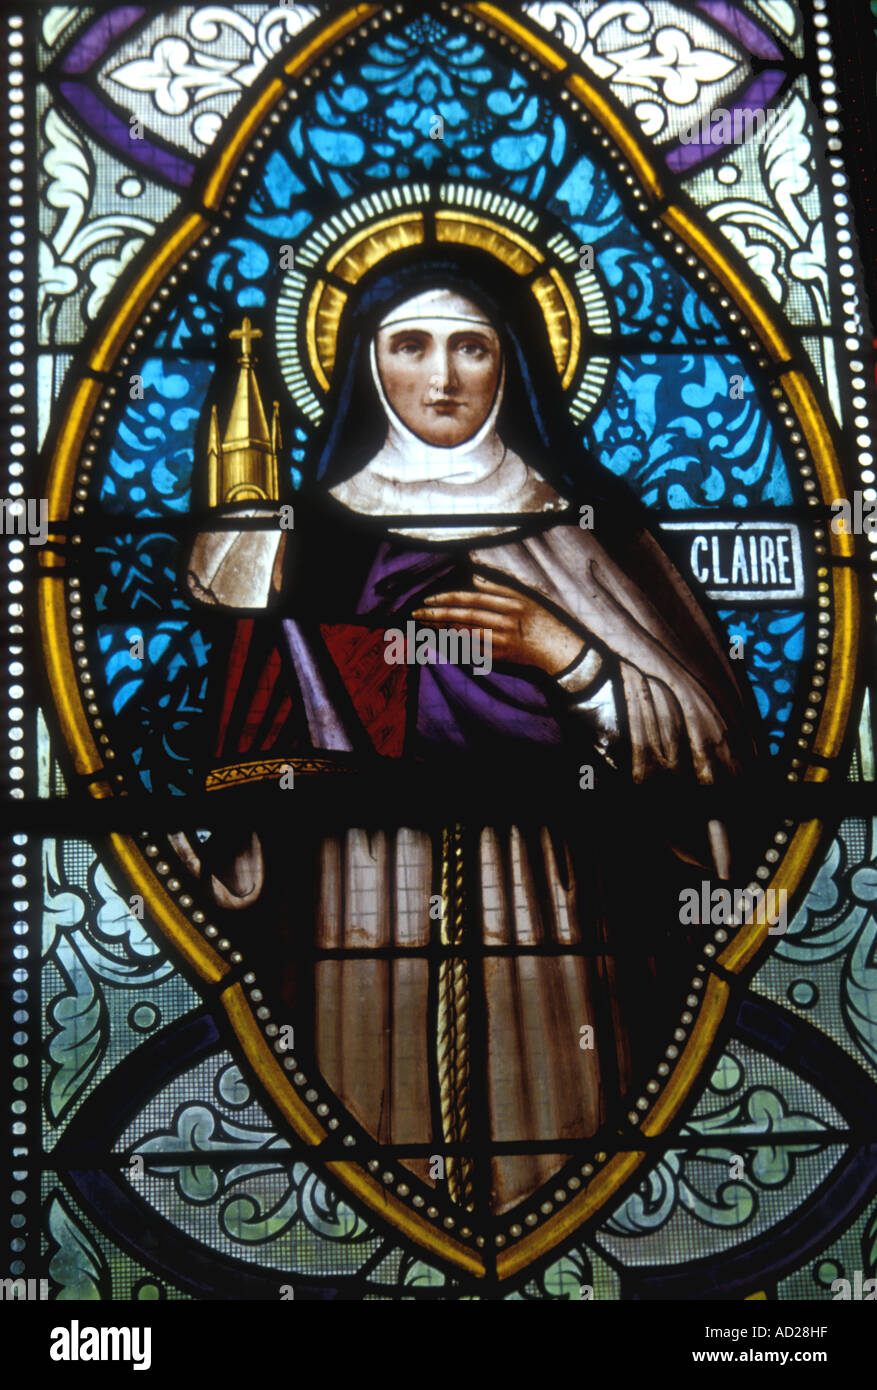 Saint Claire of Assisi, Patron Saint of Needleworkers, stained glass window of a church in the Seychelles - Stock Image